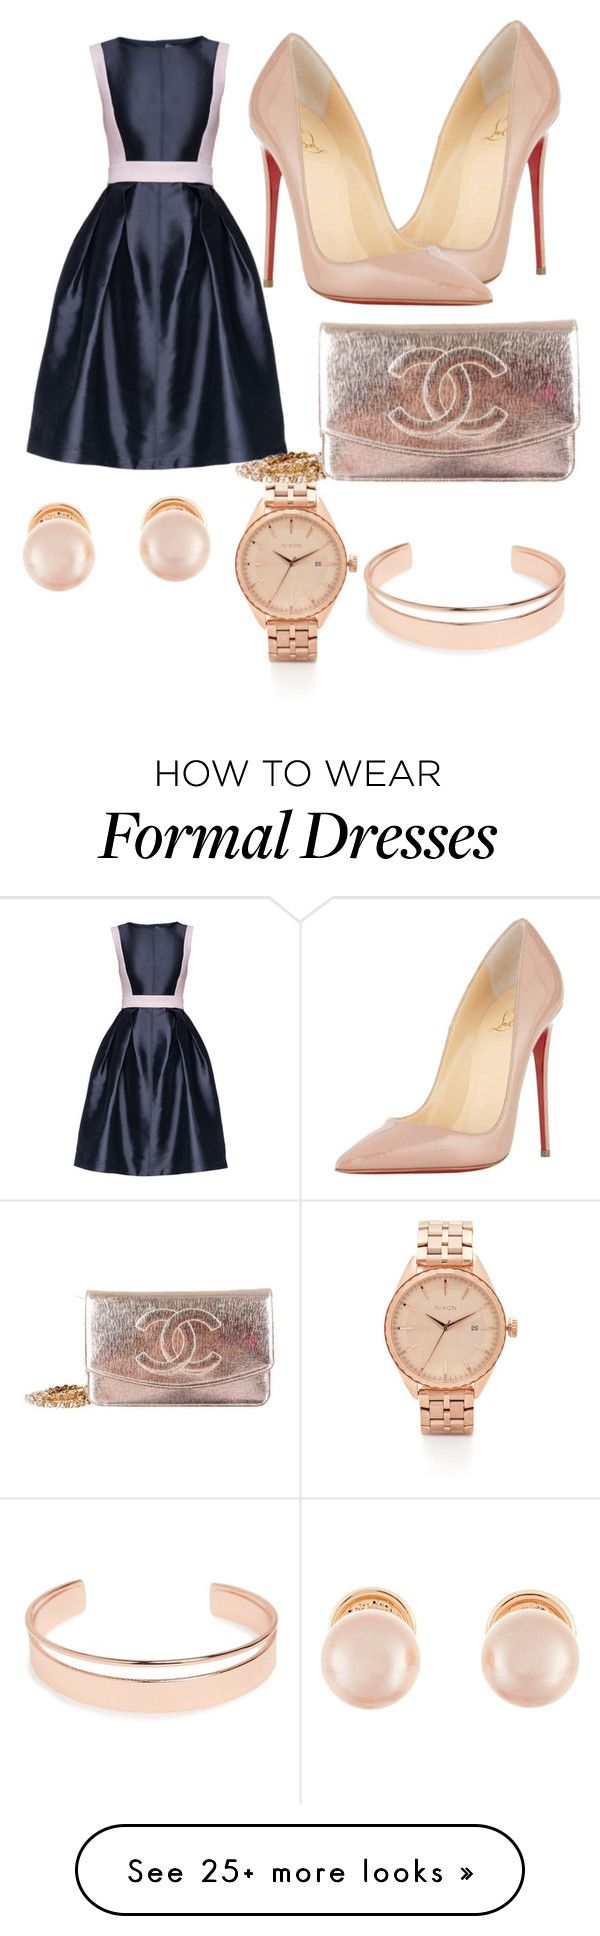 """Something Formal"" by nisavillanueva on Polyvore featuring Lattori, Christian Louboutin, Kenneth Jay Lane, Nixon, Leith and Chanel"